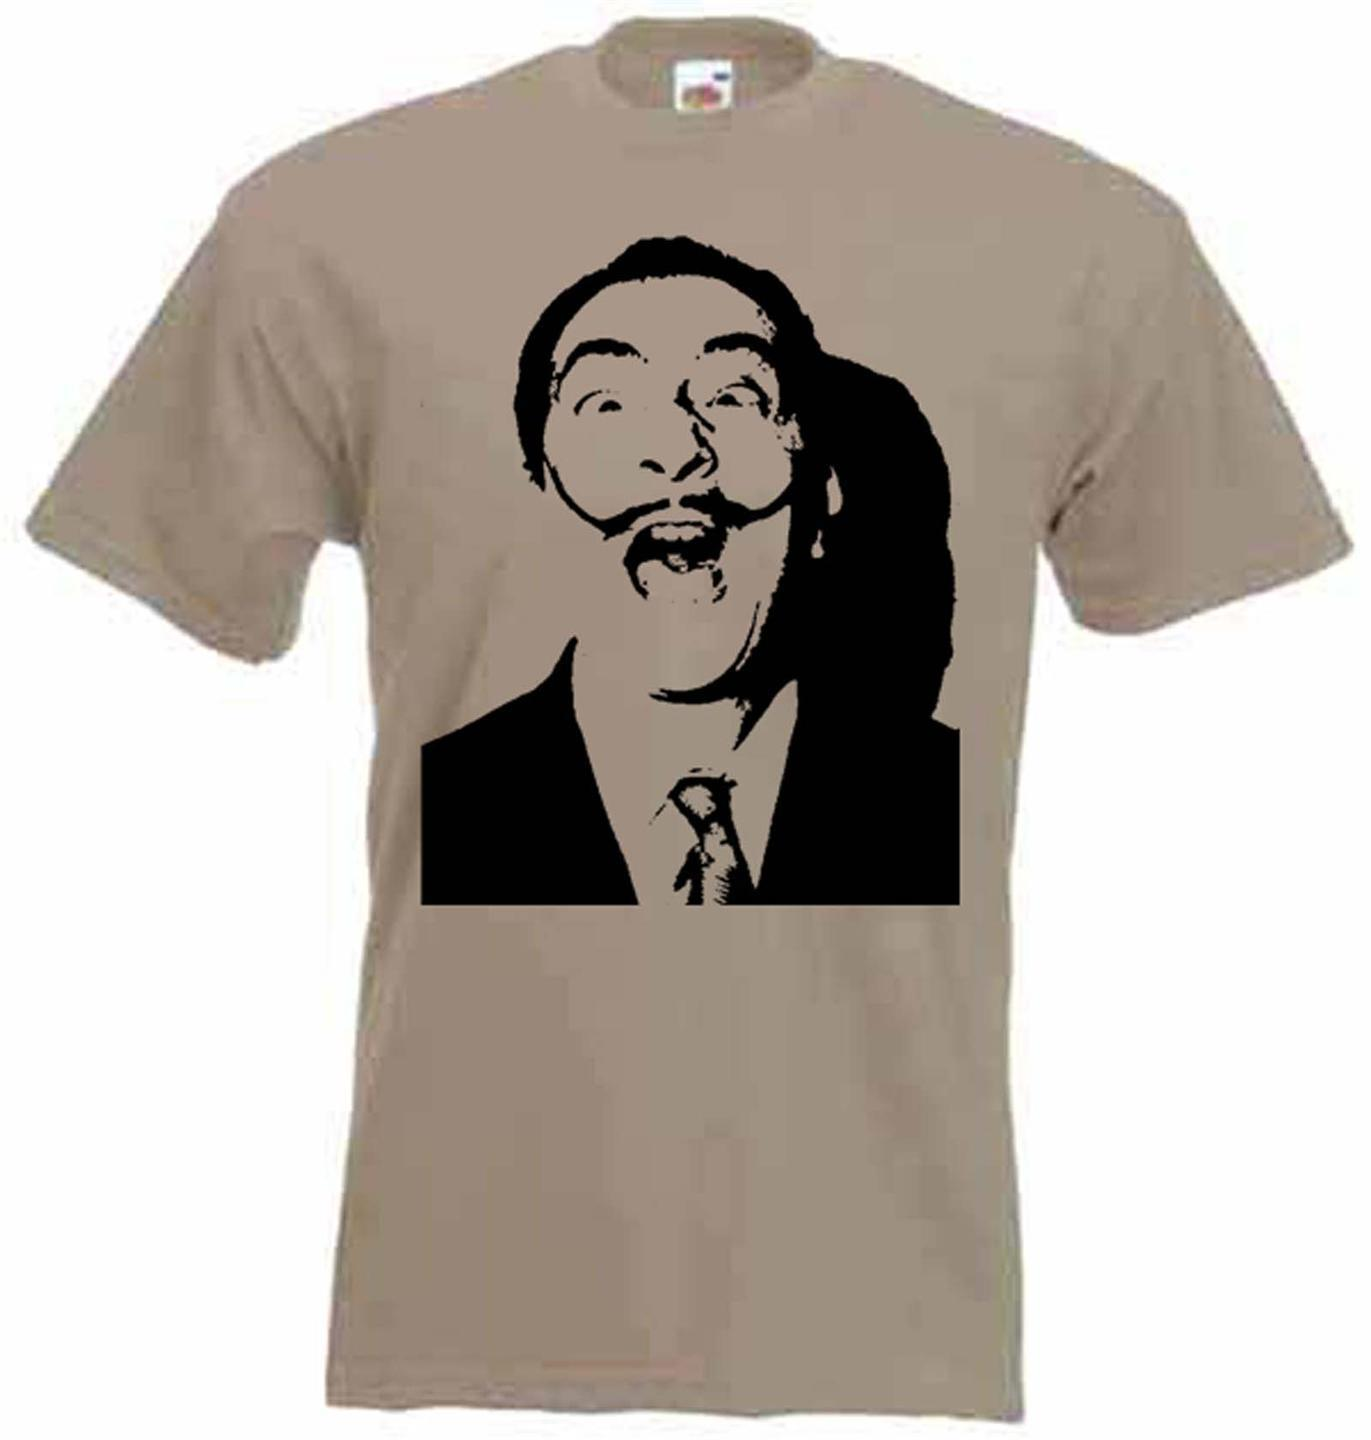 Dali T Shirt Art Drugs Salvador Dali Surrealism Cocaine 420 etc